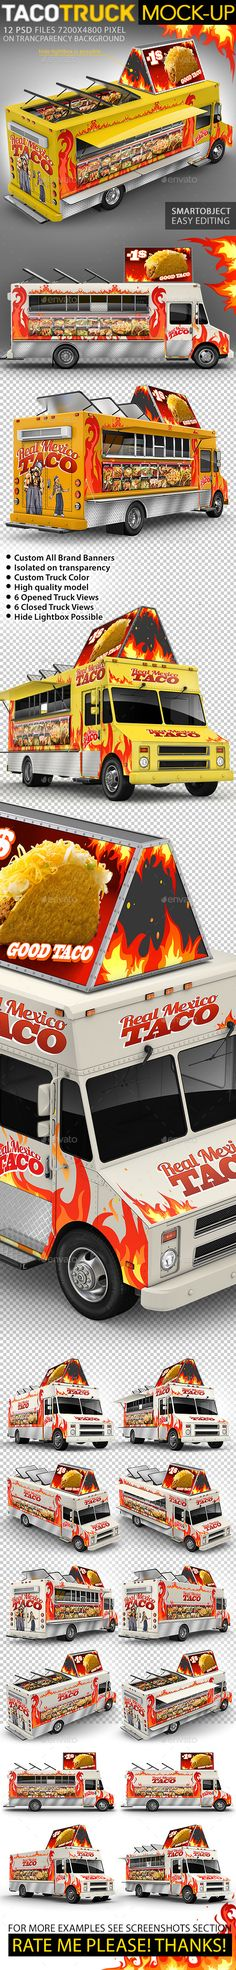 Food Truck, Taco Truck, Step Van MockUp — Photoshop PSD #mock-up #custom • Available here → https://graphicriver.net/item/food-truck-taco-truck-step-van-mockup/16203542?ref=pxcr